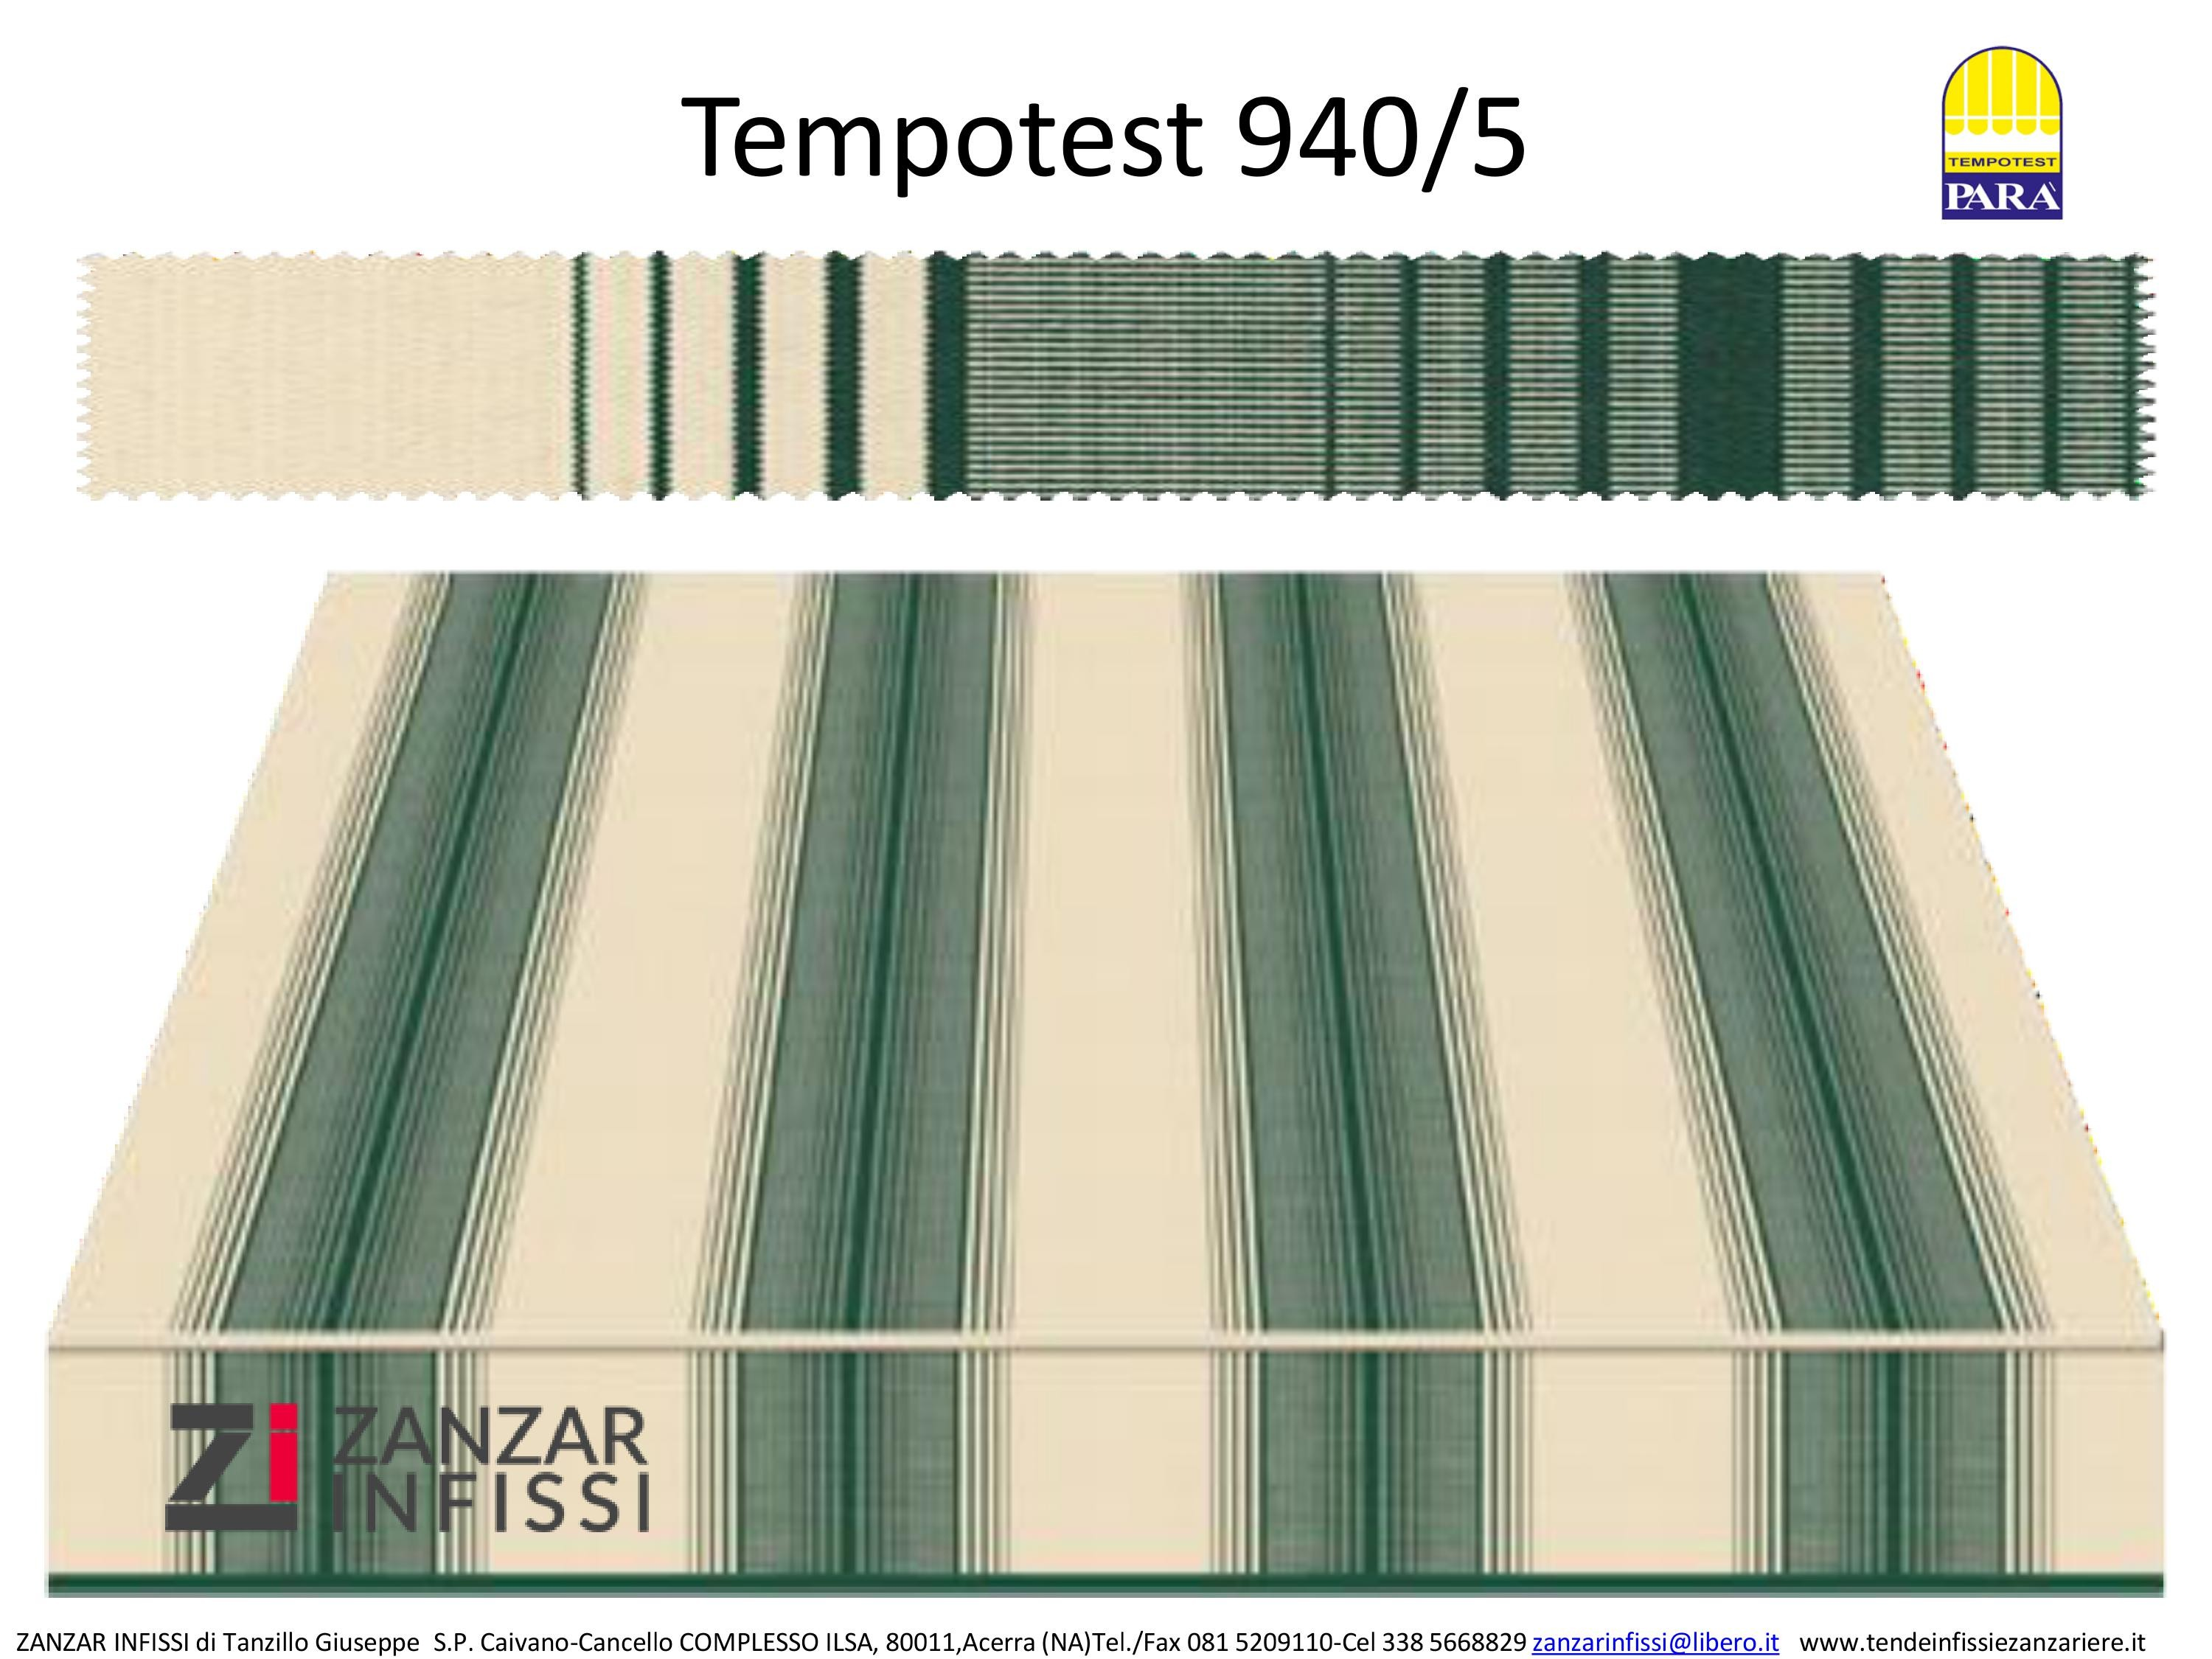 Tempotest 940/5